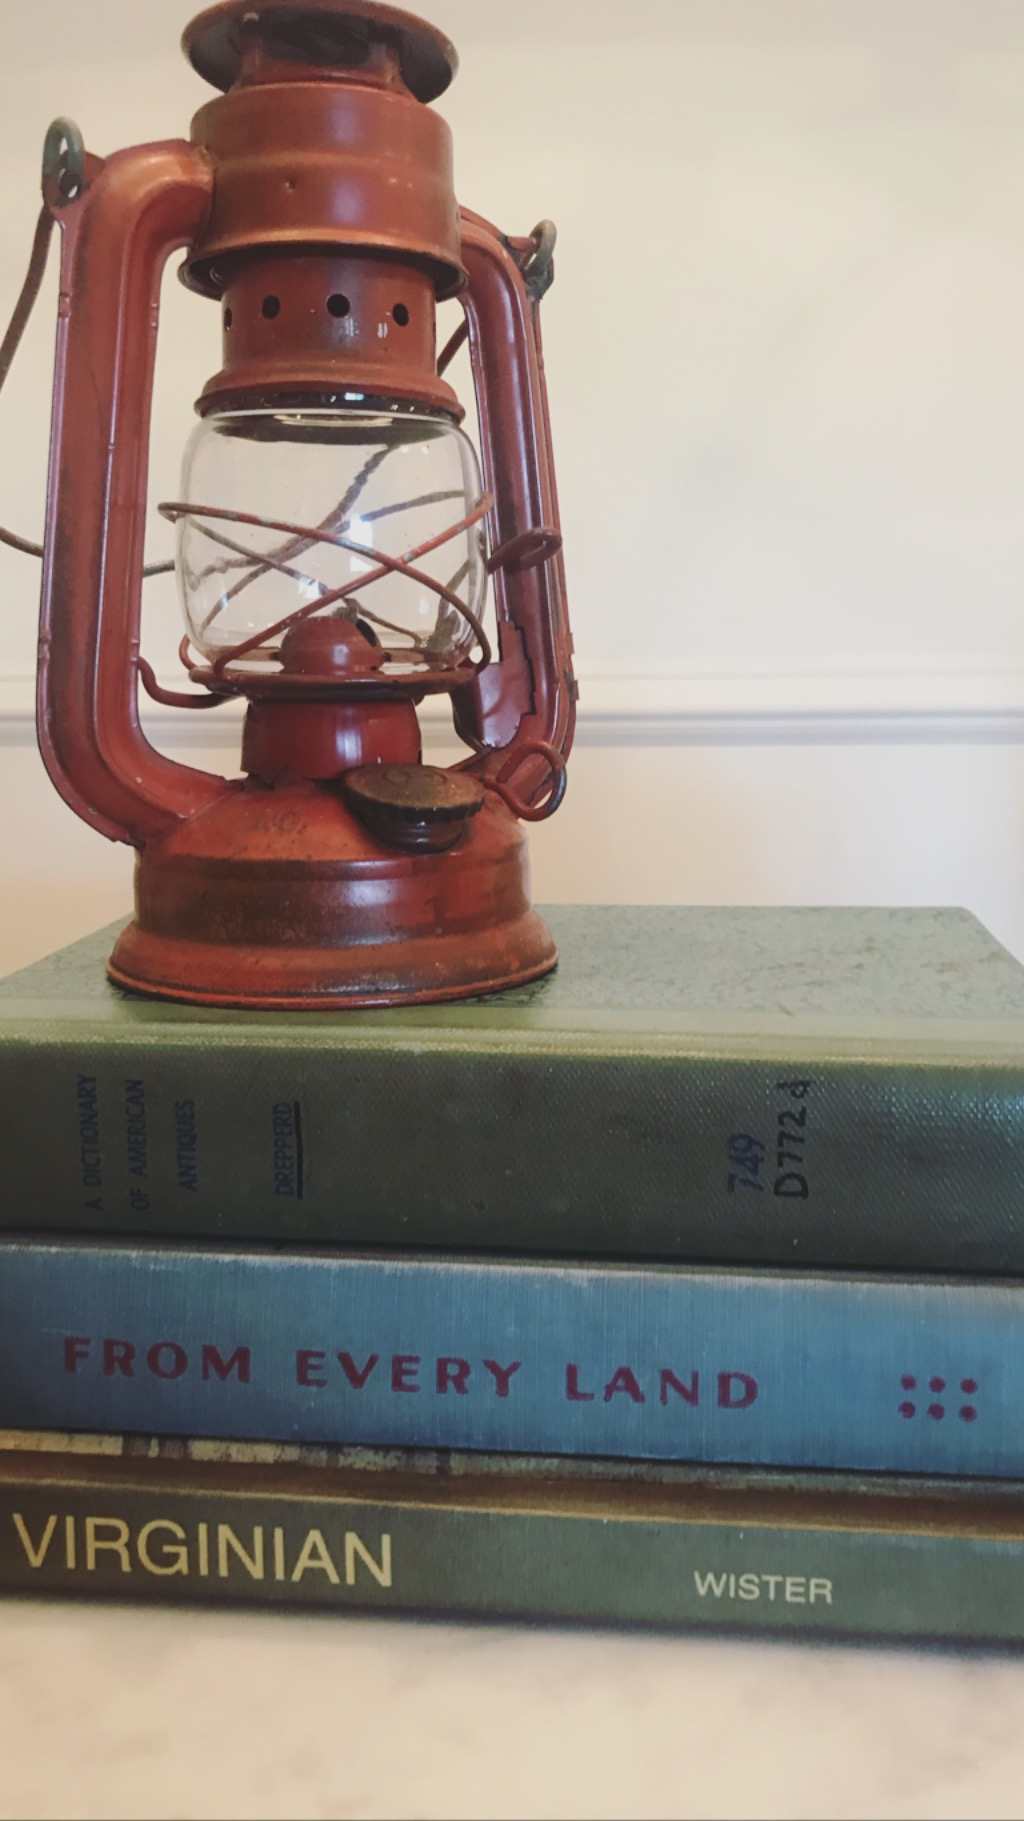 Darling vintage red lantern - The moment I saw this tarnished, slightly beaten, red lantern, I knew it was special.